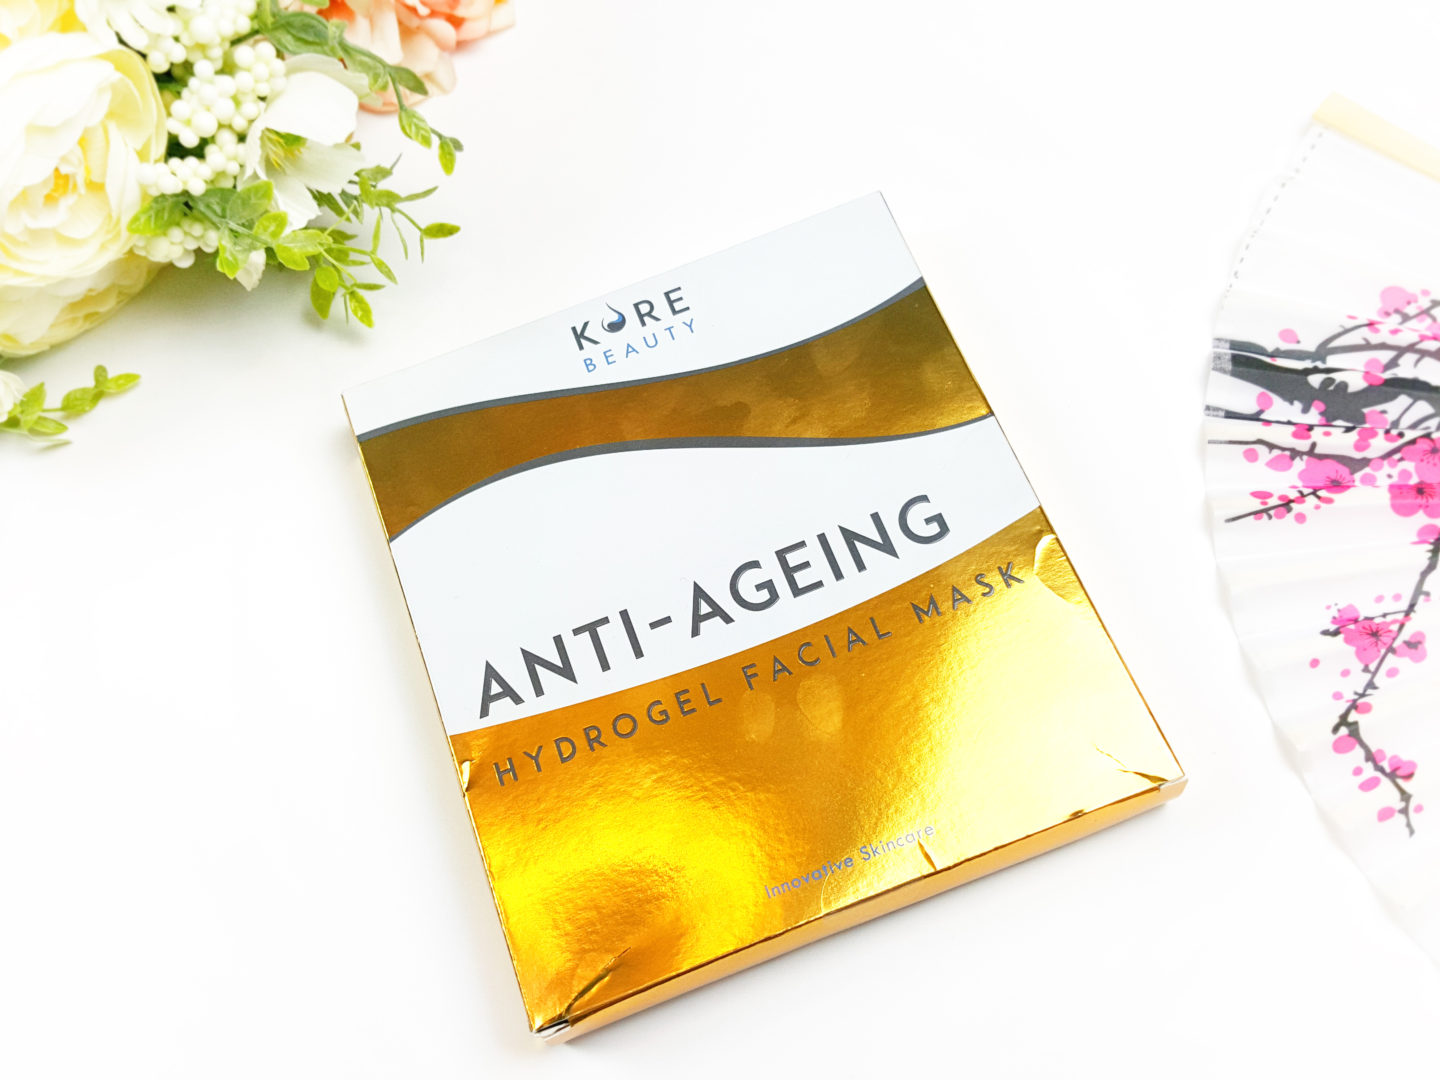 Korebeauty Anti-Ageing Hydrogel Facial Mask*